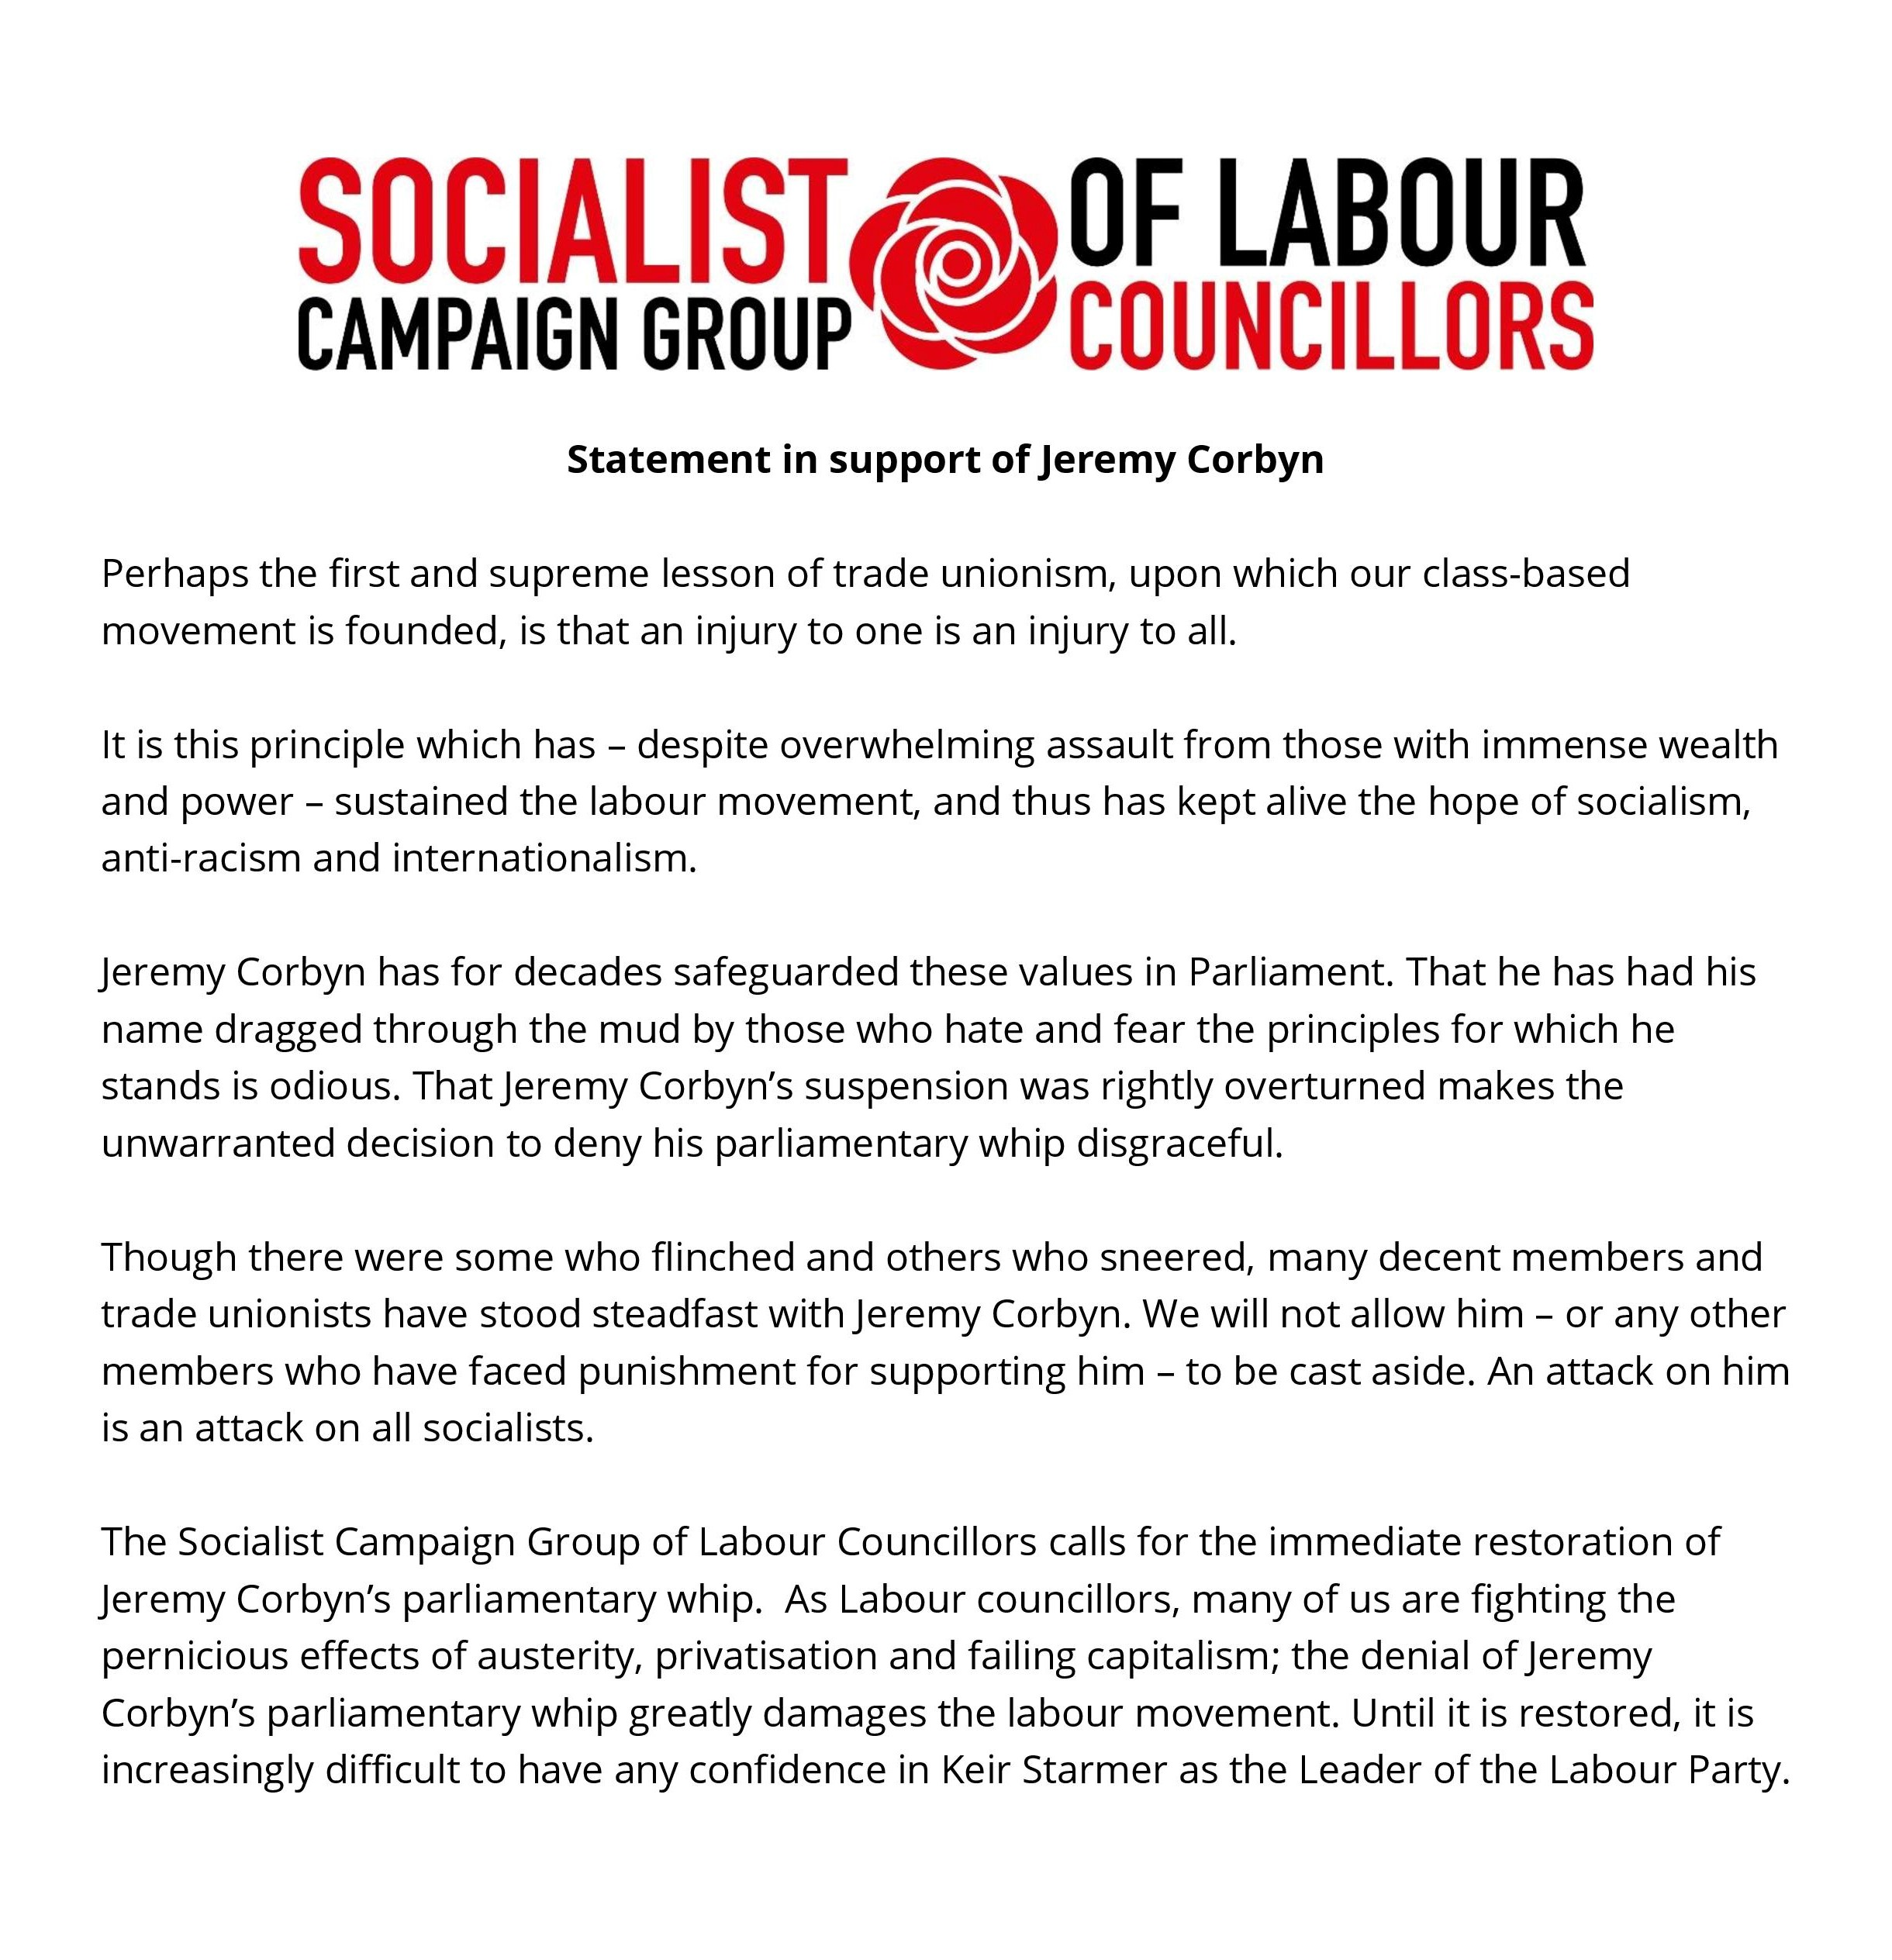 Statement in support of Jeremy Corbyn